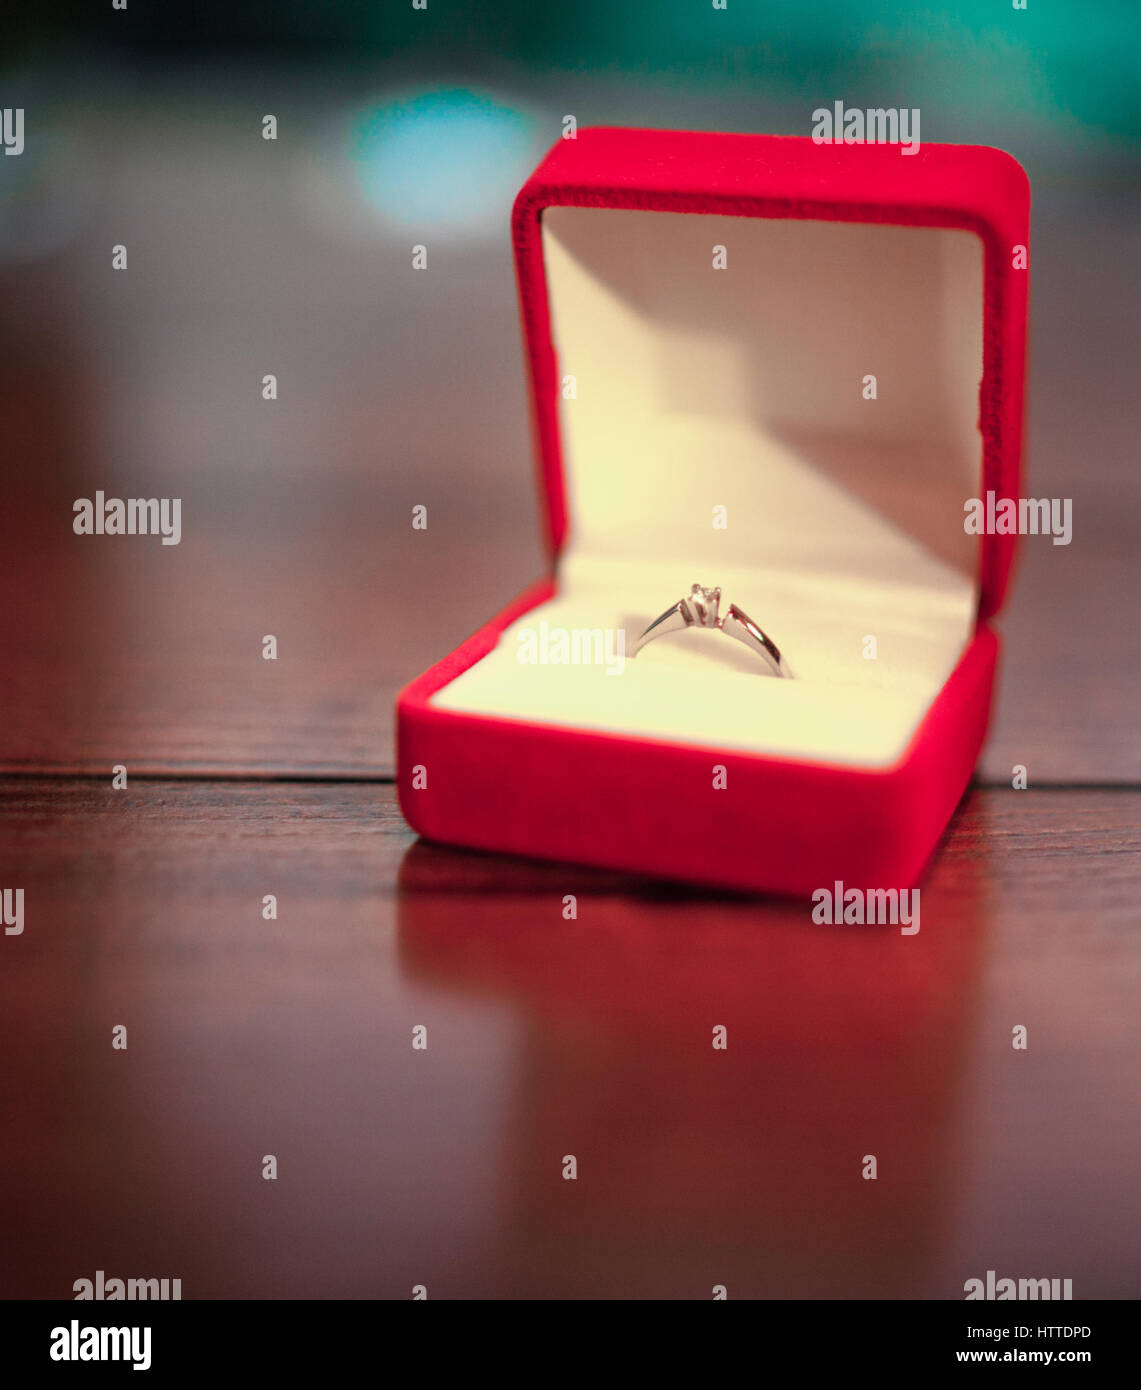 Opened red jewelry case with engagement ring on table. Gold ring with diamond. Close-up. - Stock Image